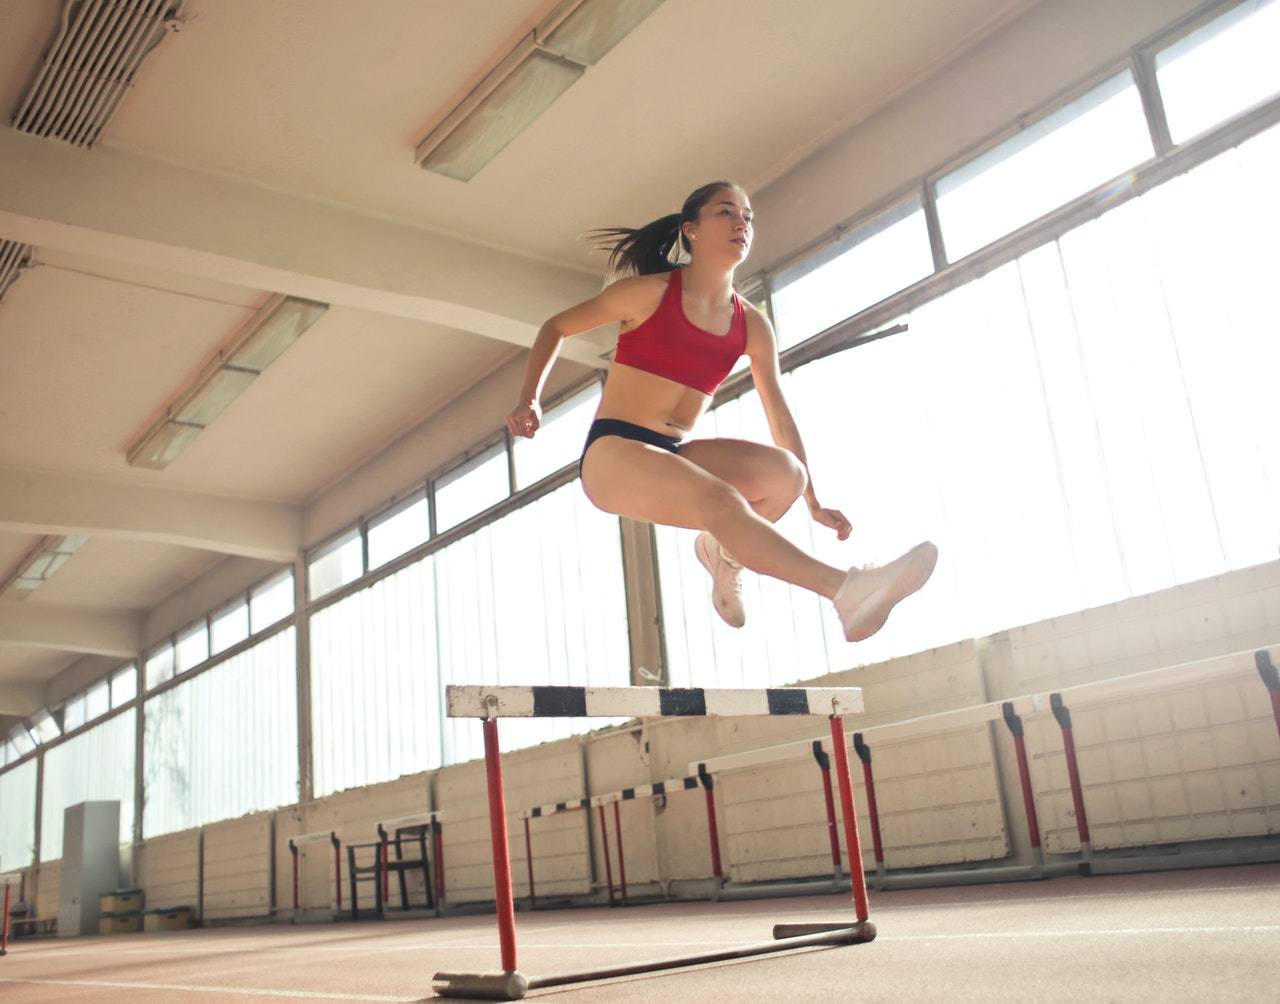 woman jumping over an obstacle